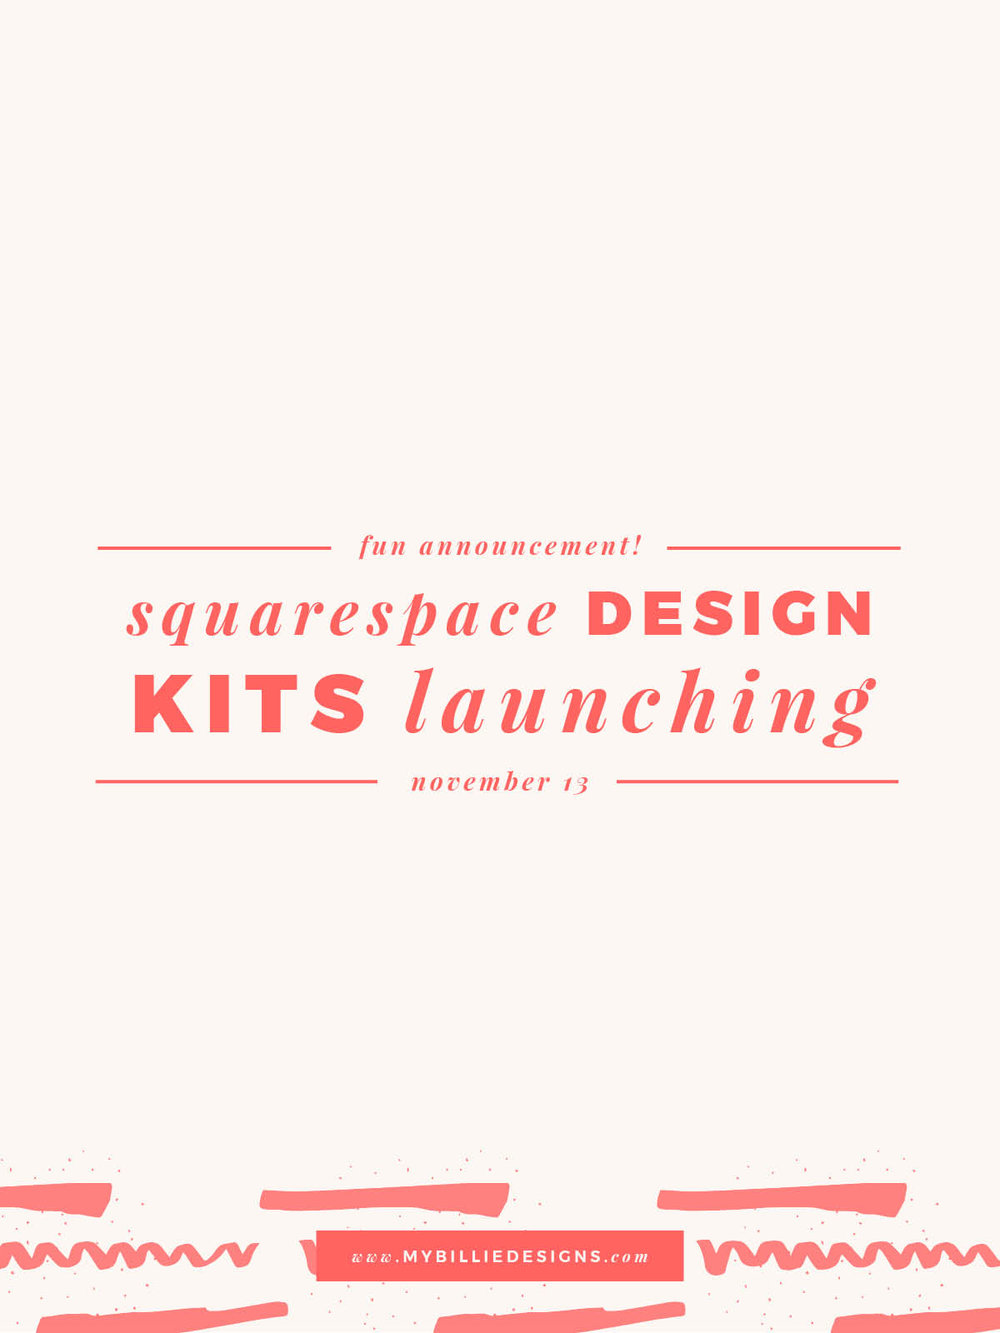 Squarespace Design Kits!